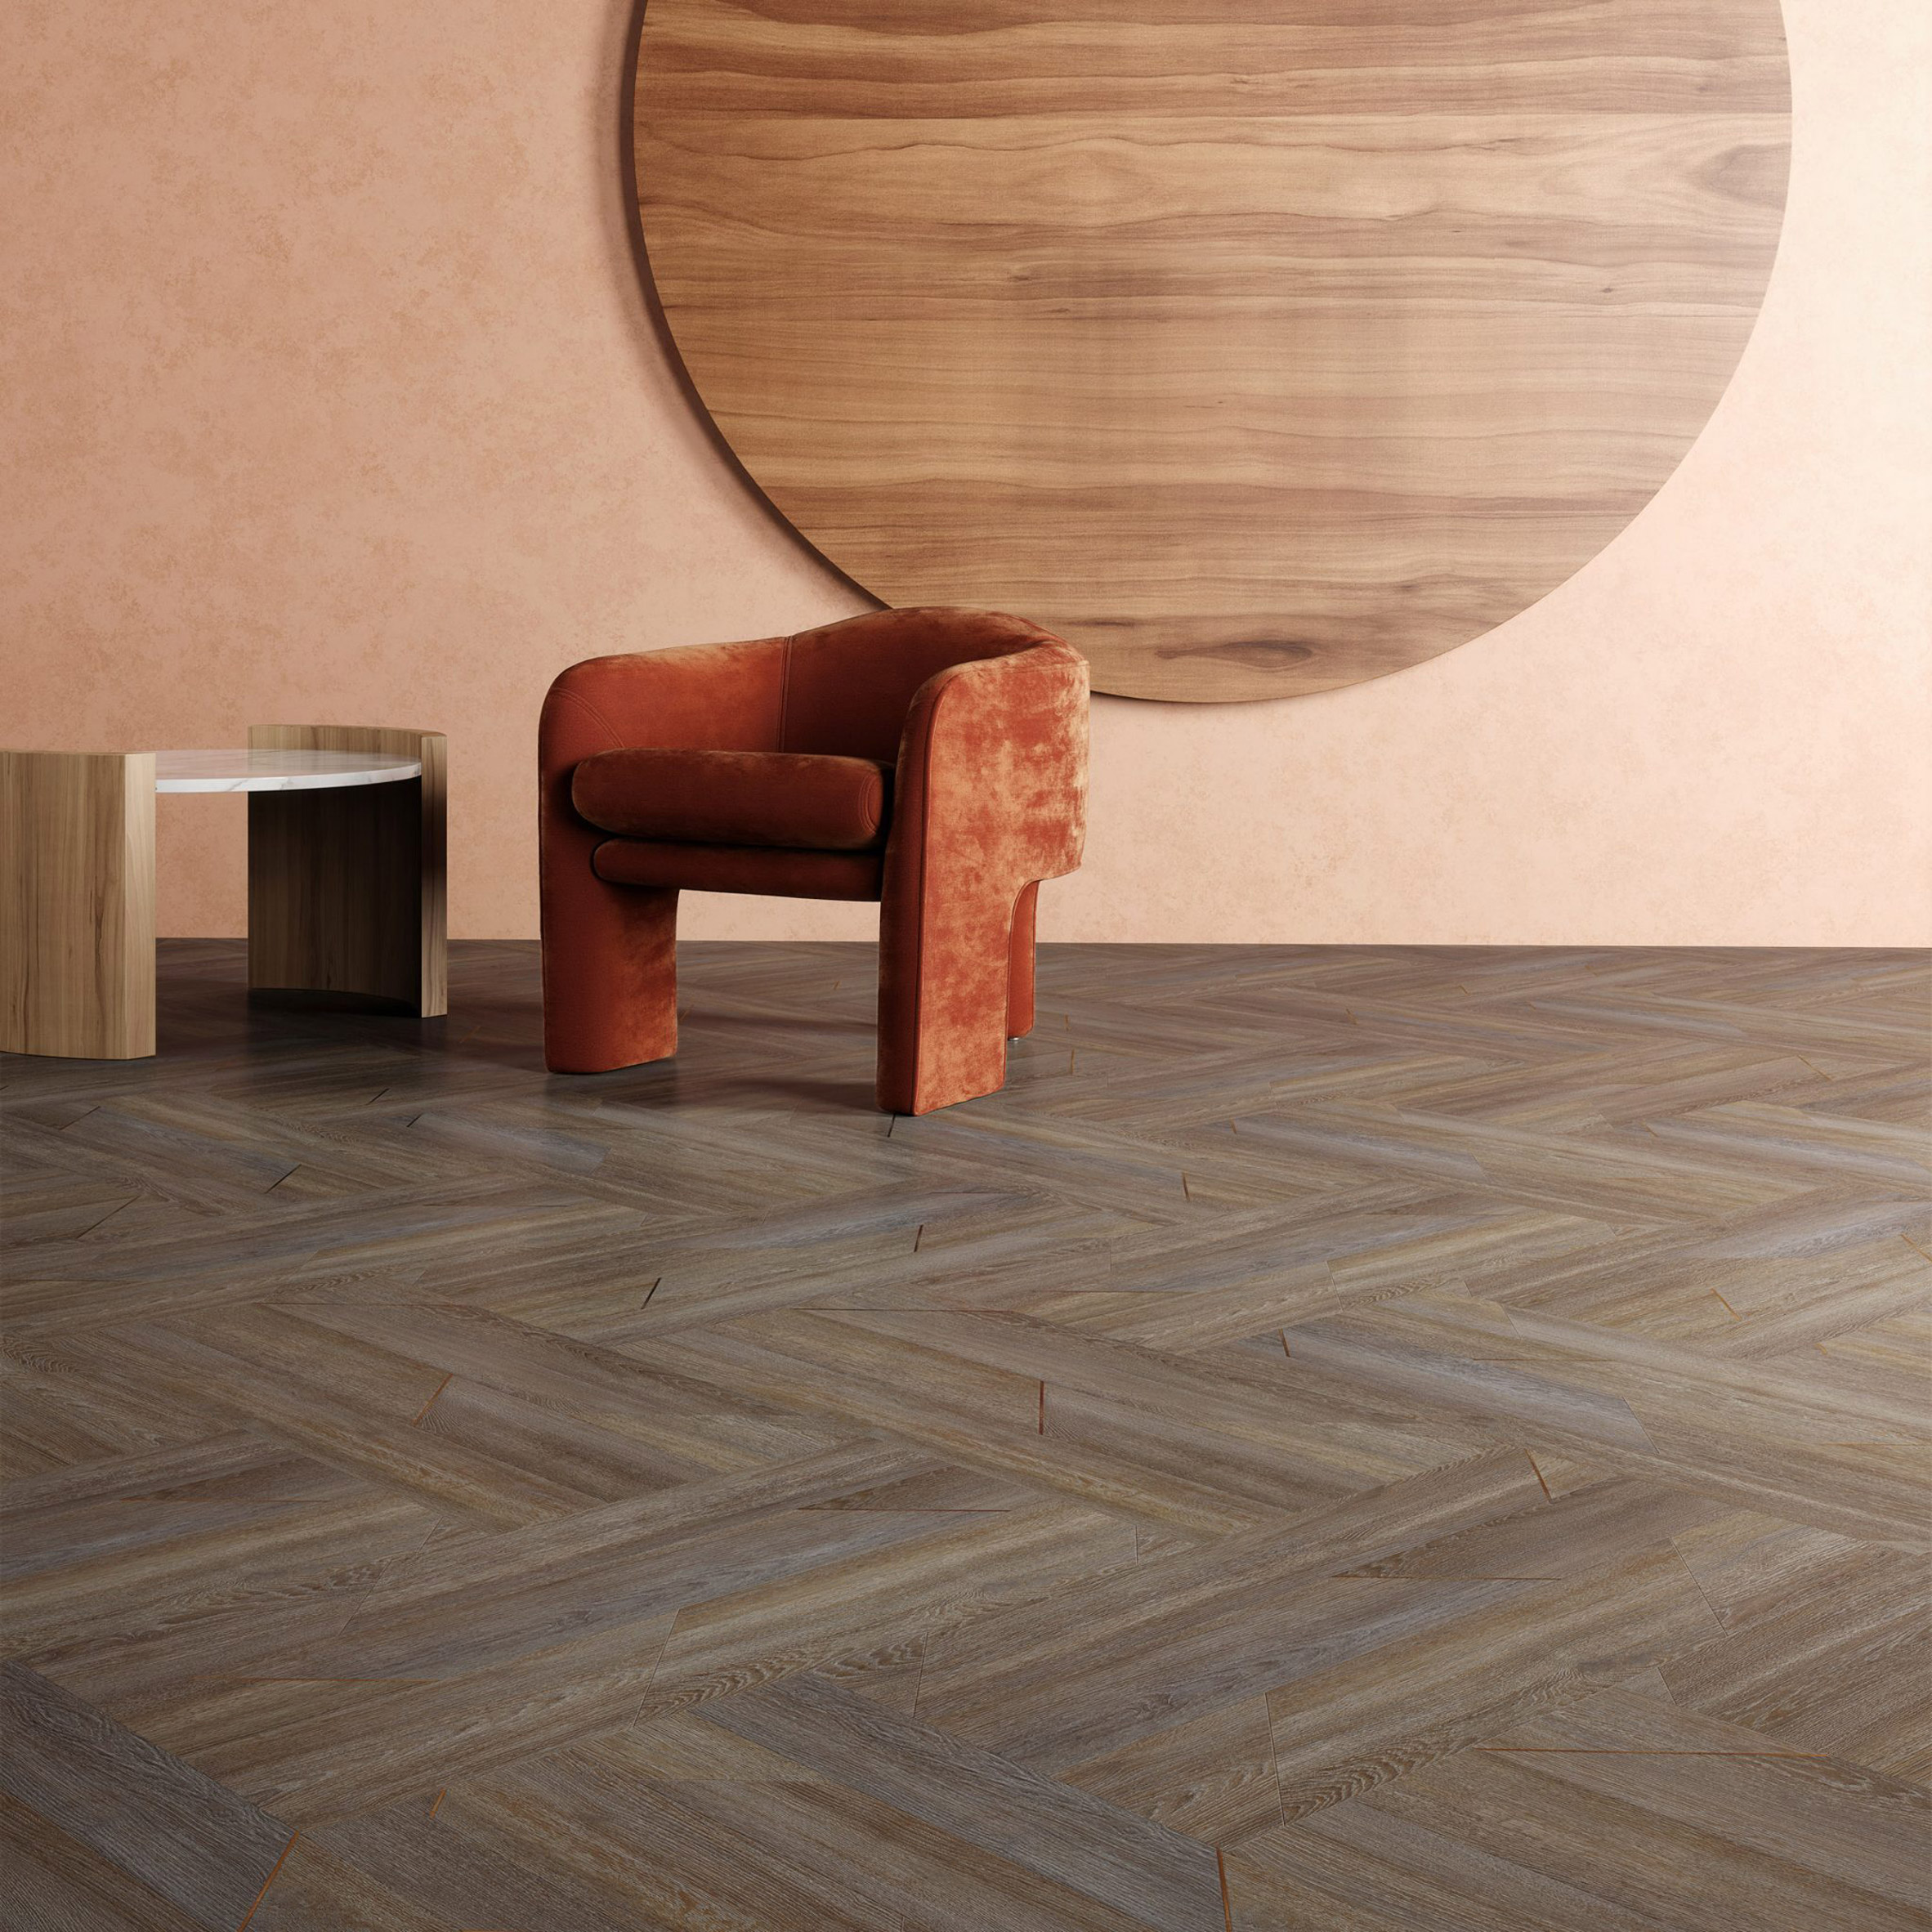 Inset flooring collection by Patcraft